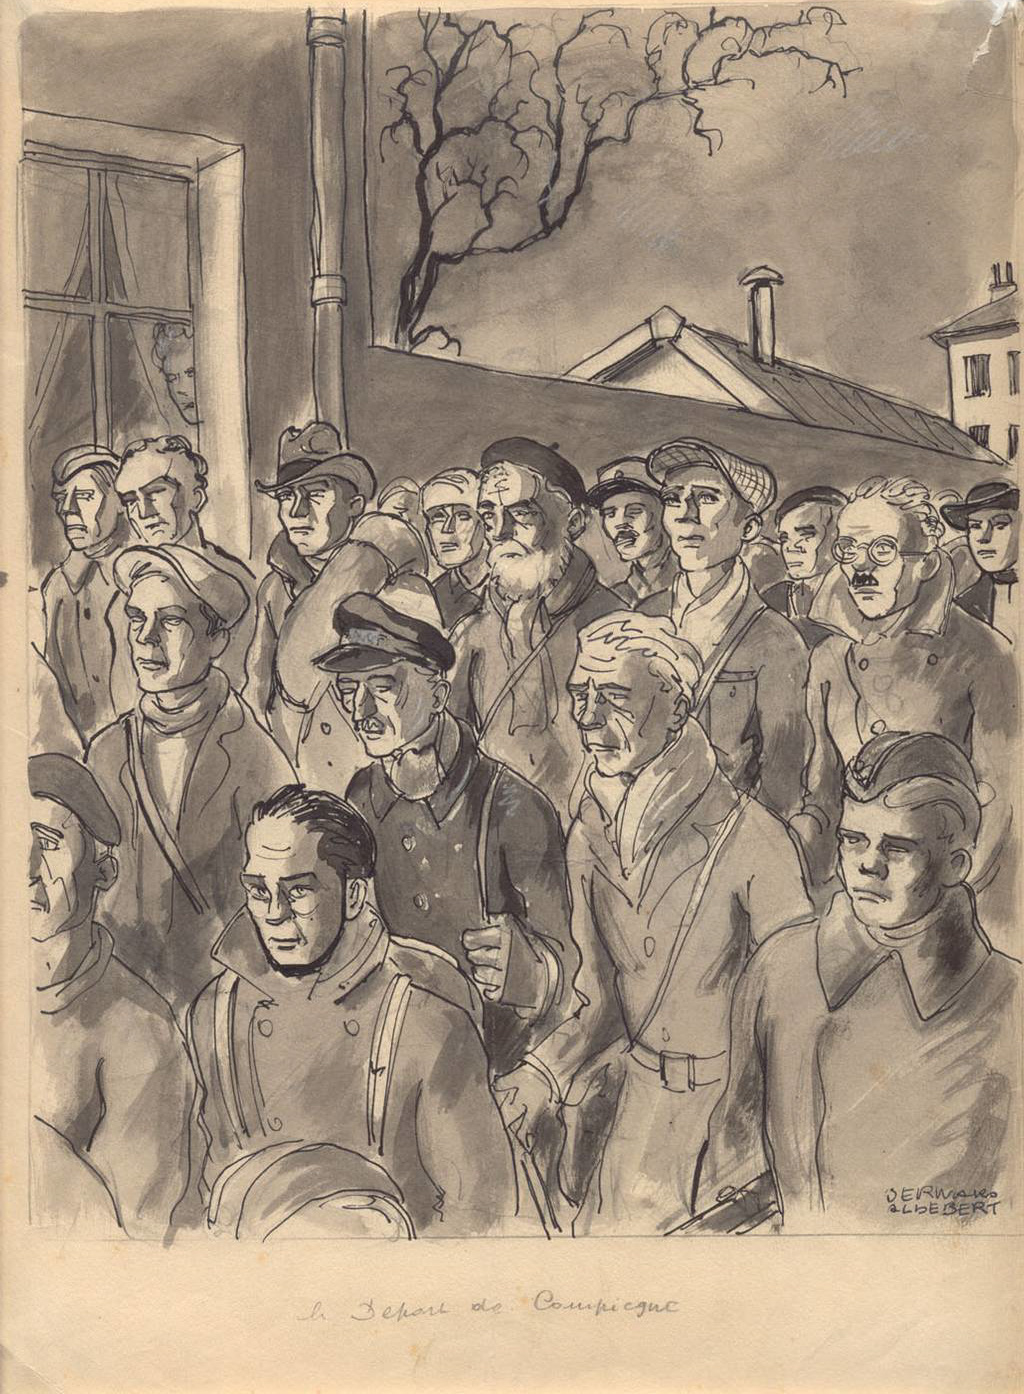 """Departure from Compiègne"", drawing by the French survivor Bernard Aldebert, 1945/46. (Mauthausen Memorial / Collections)"